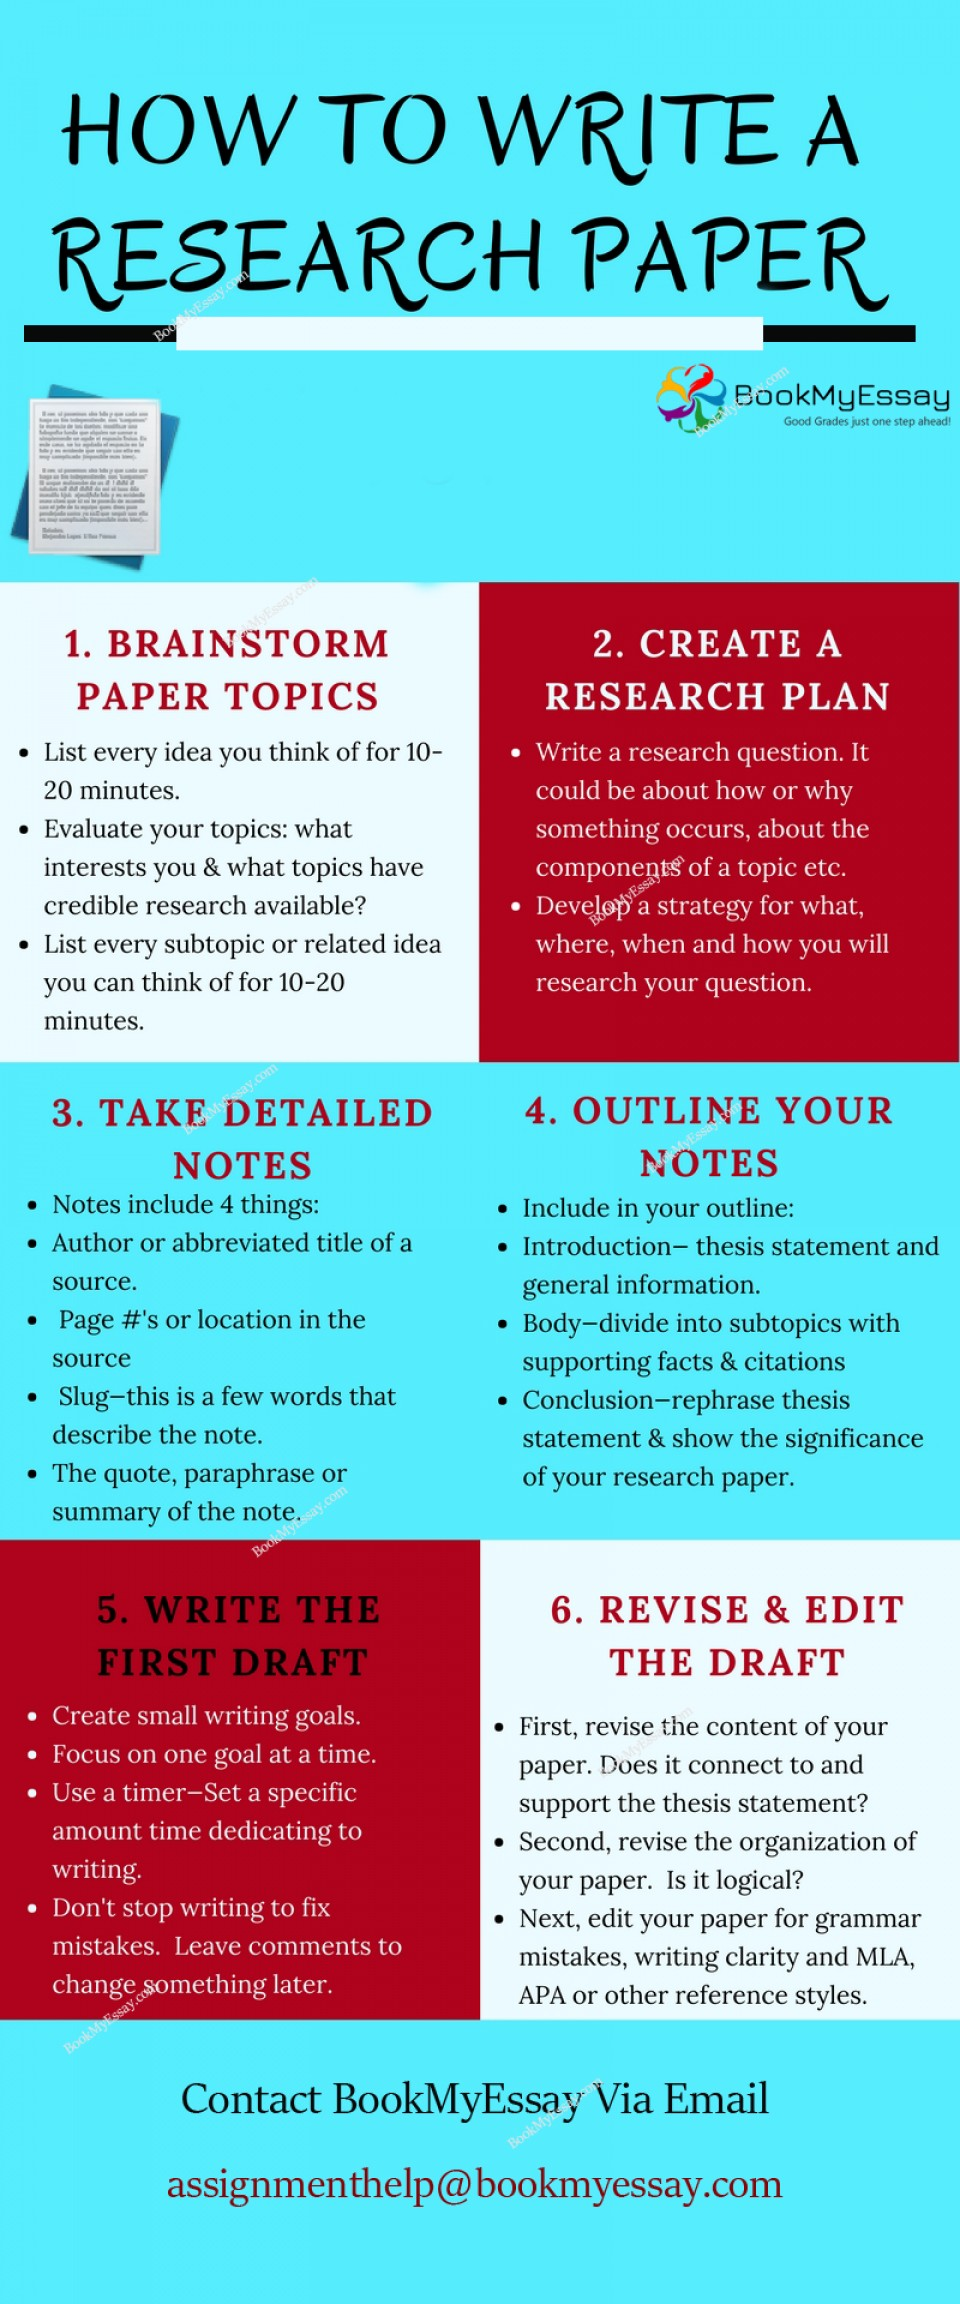 003 Research Paper Writing Service Dreaded Services In India Best Academic Online 960